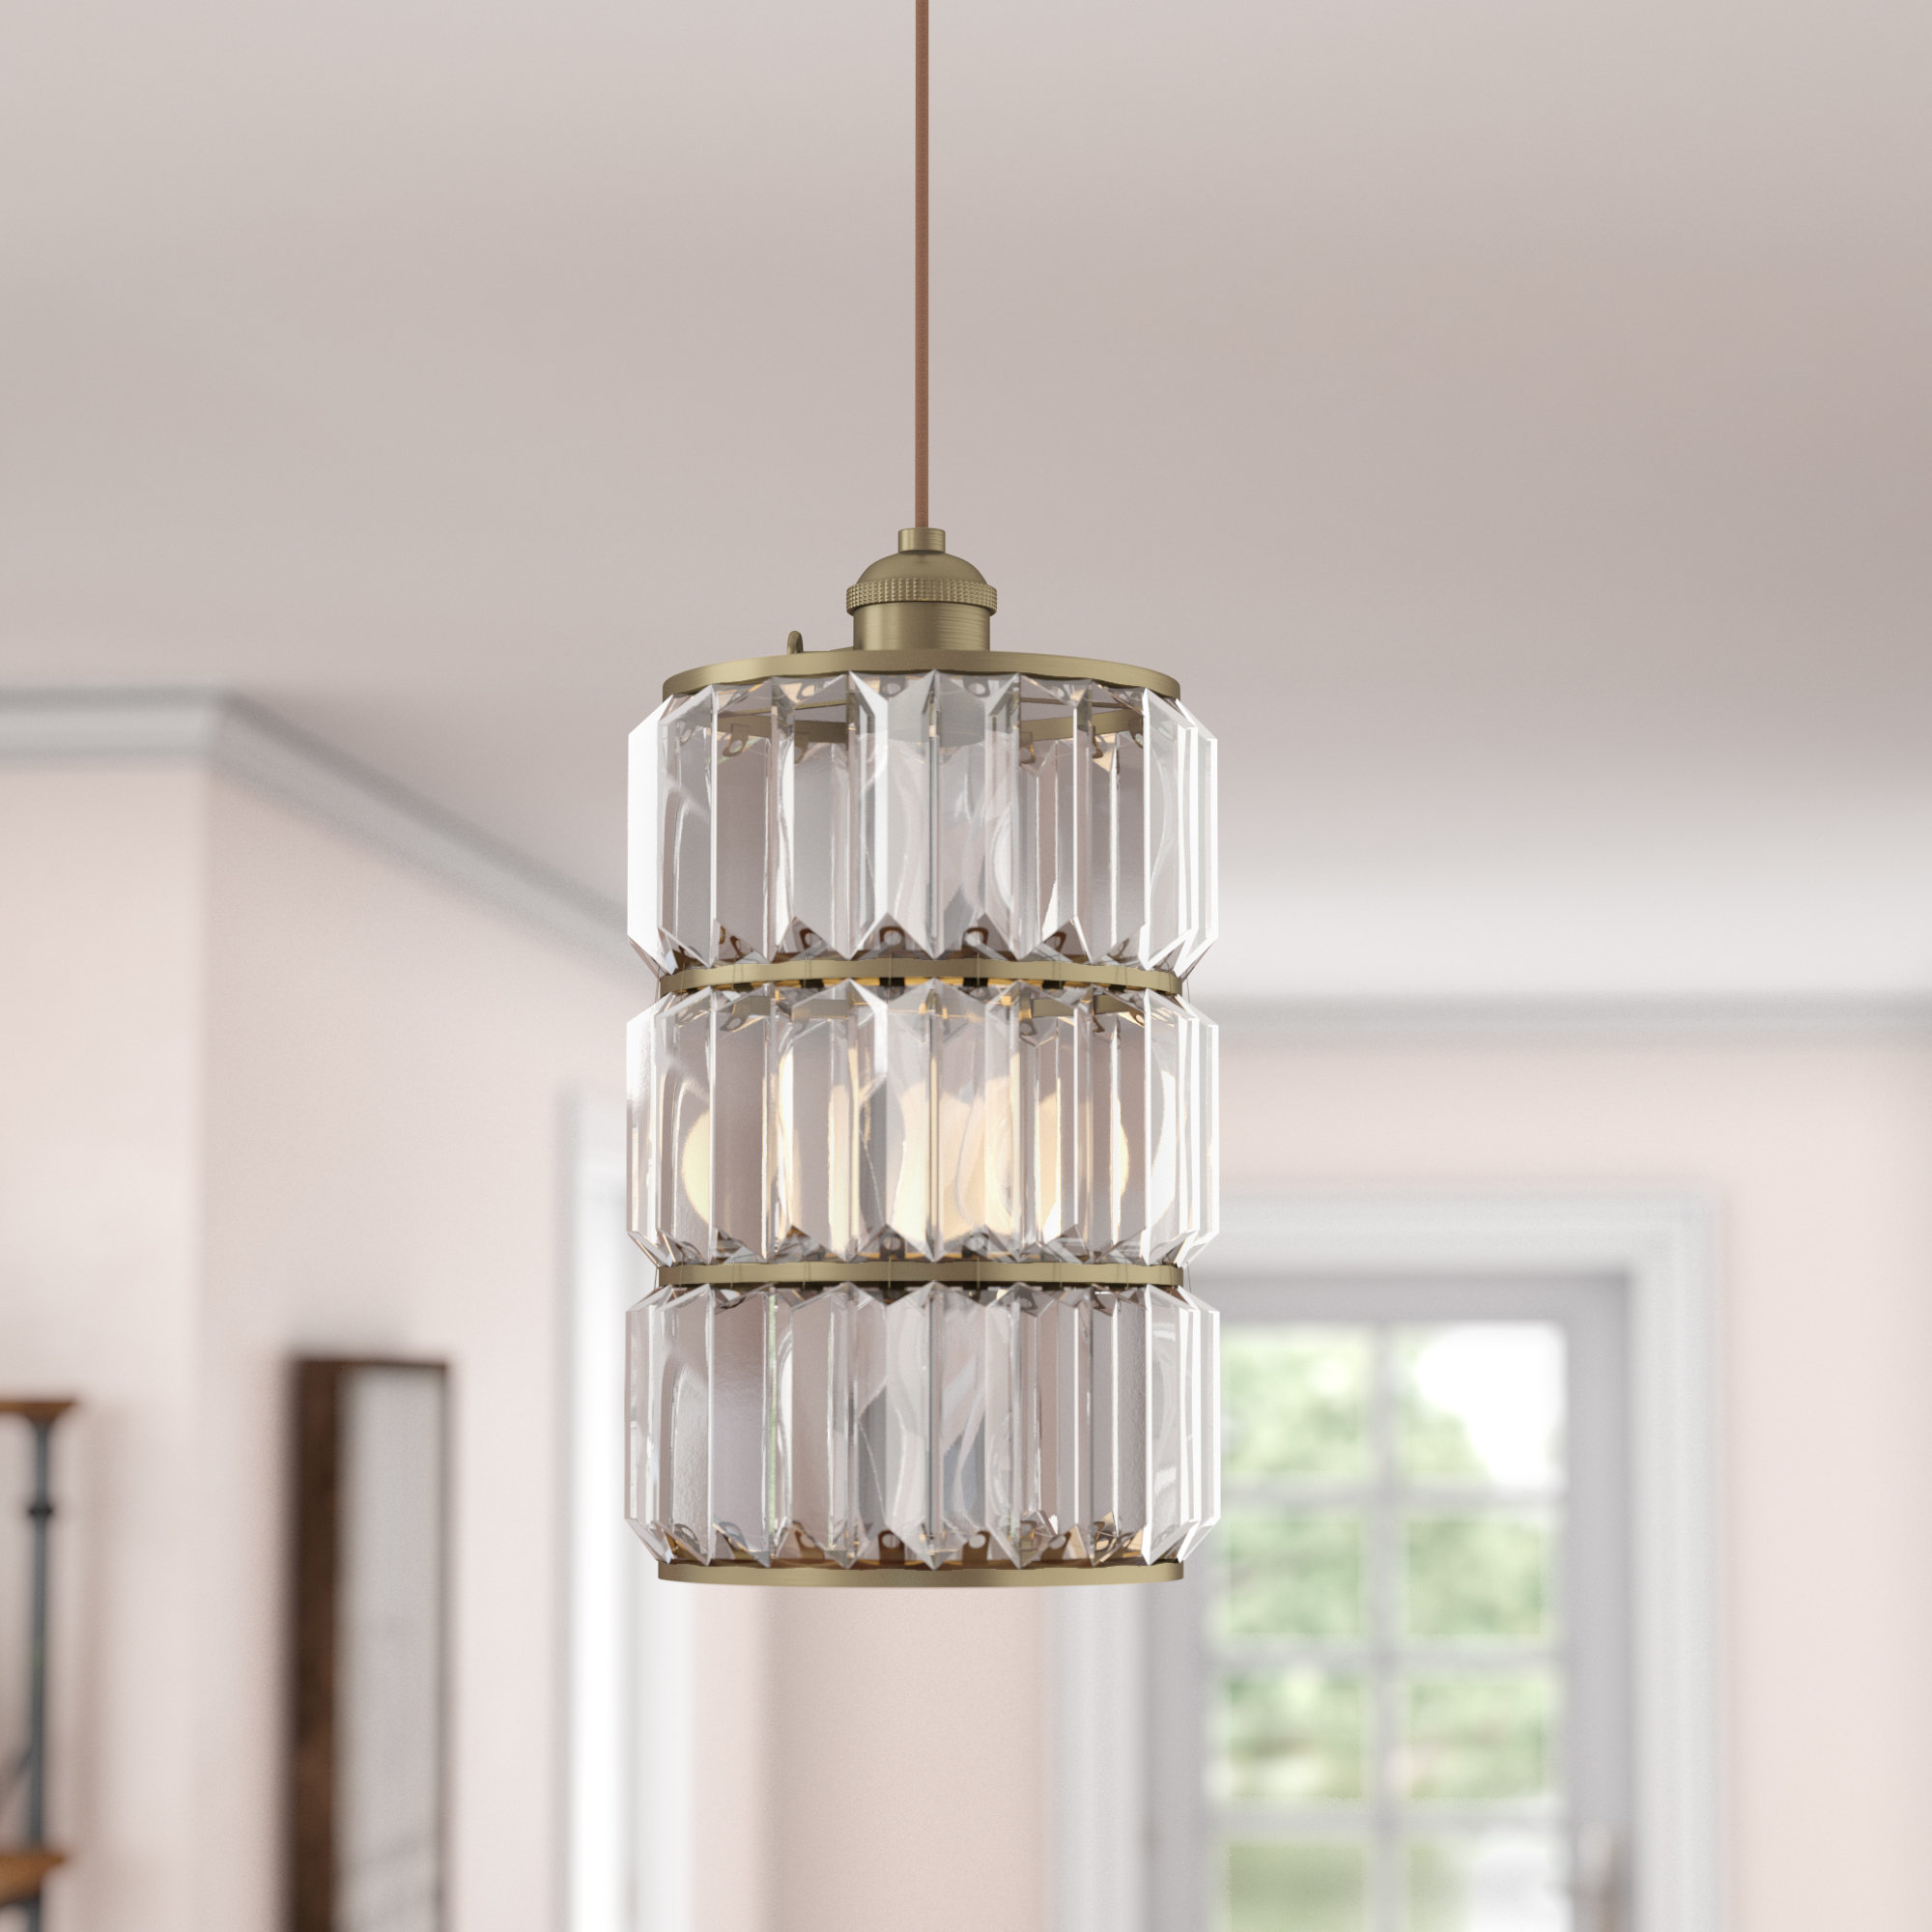 Baxley 1 Light Single Cylinder Pendant With Regard To Trendy Nadeau 1 Light Single Cone Pendants (View 1 of 25)